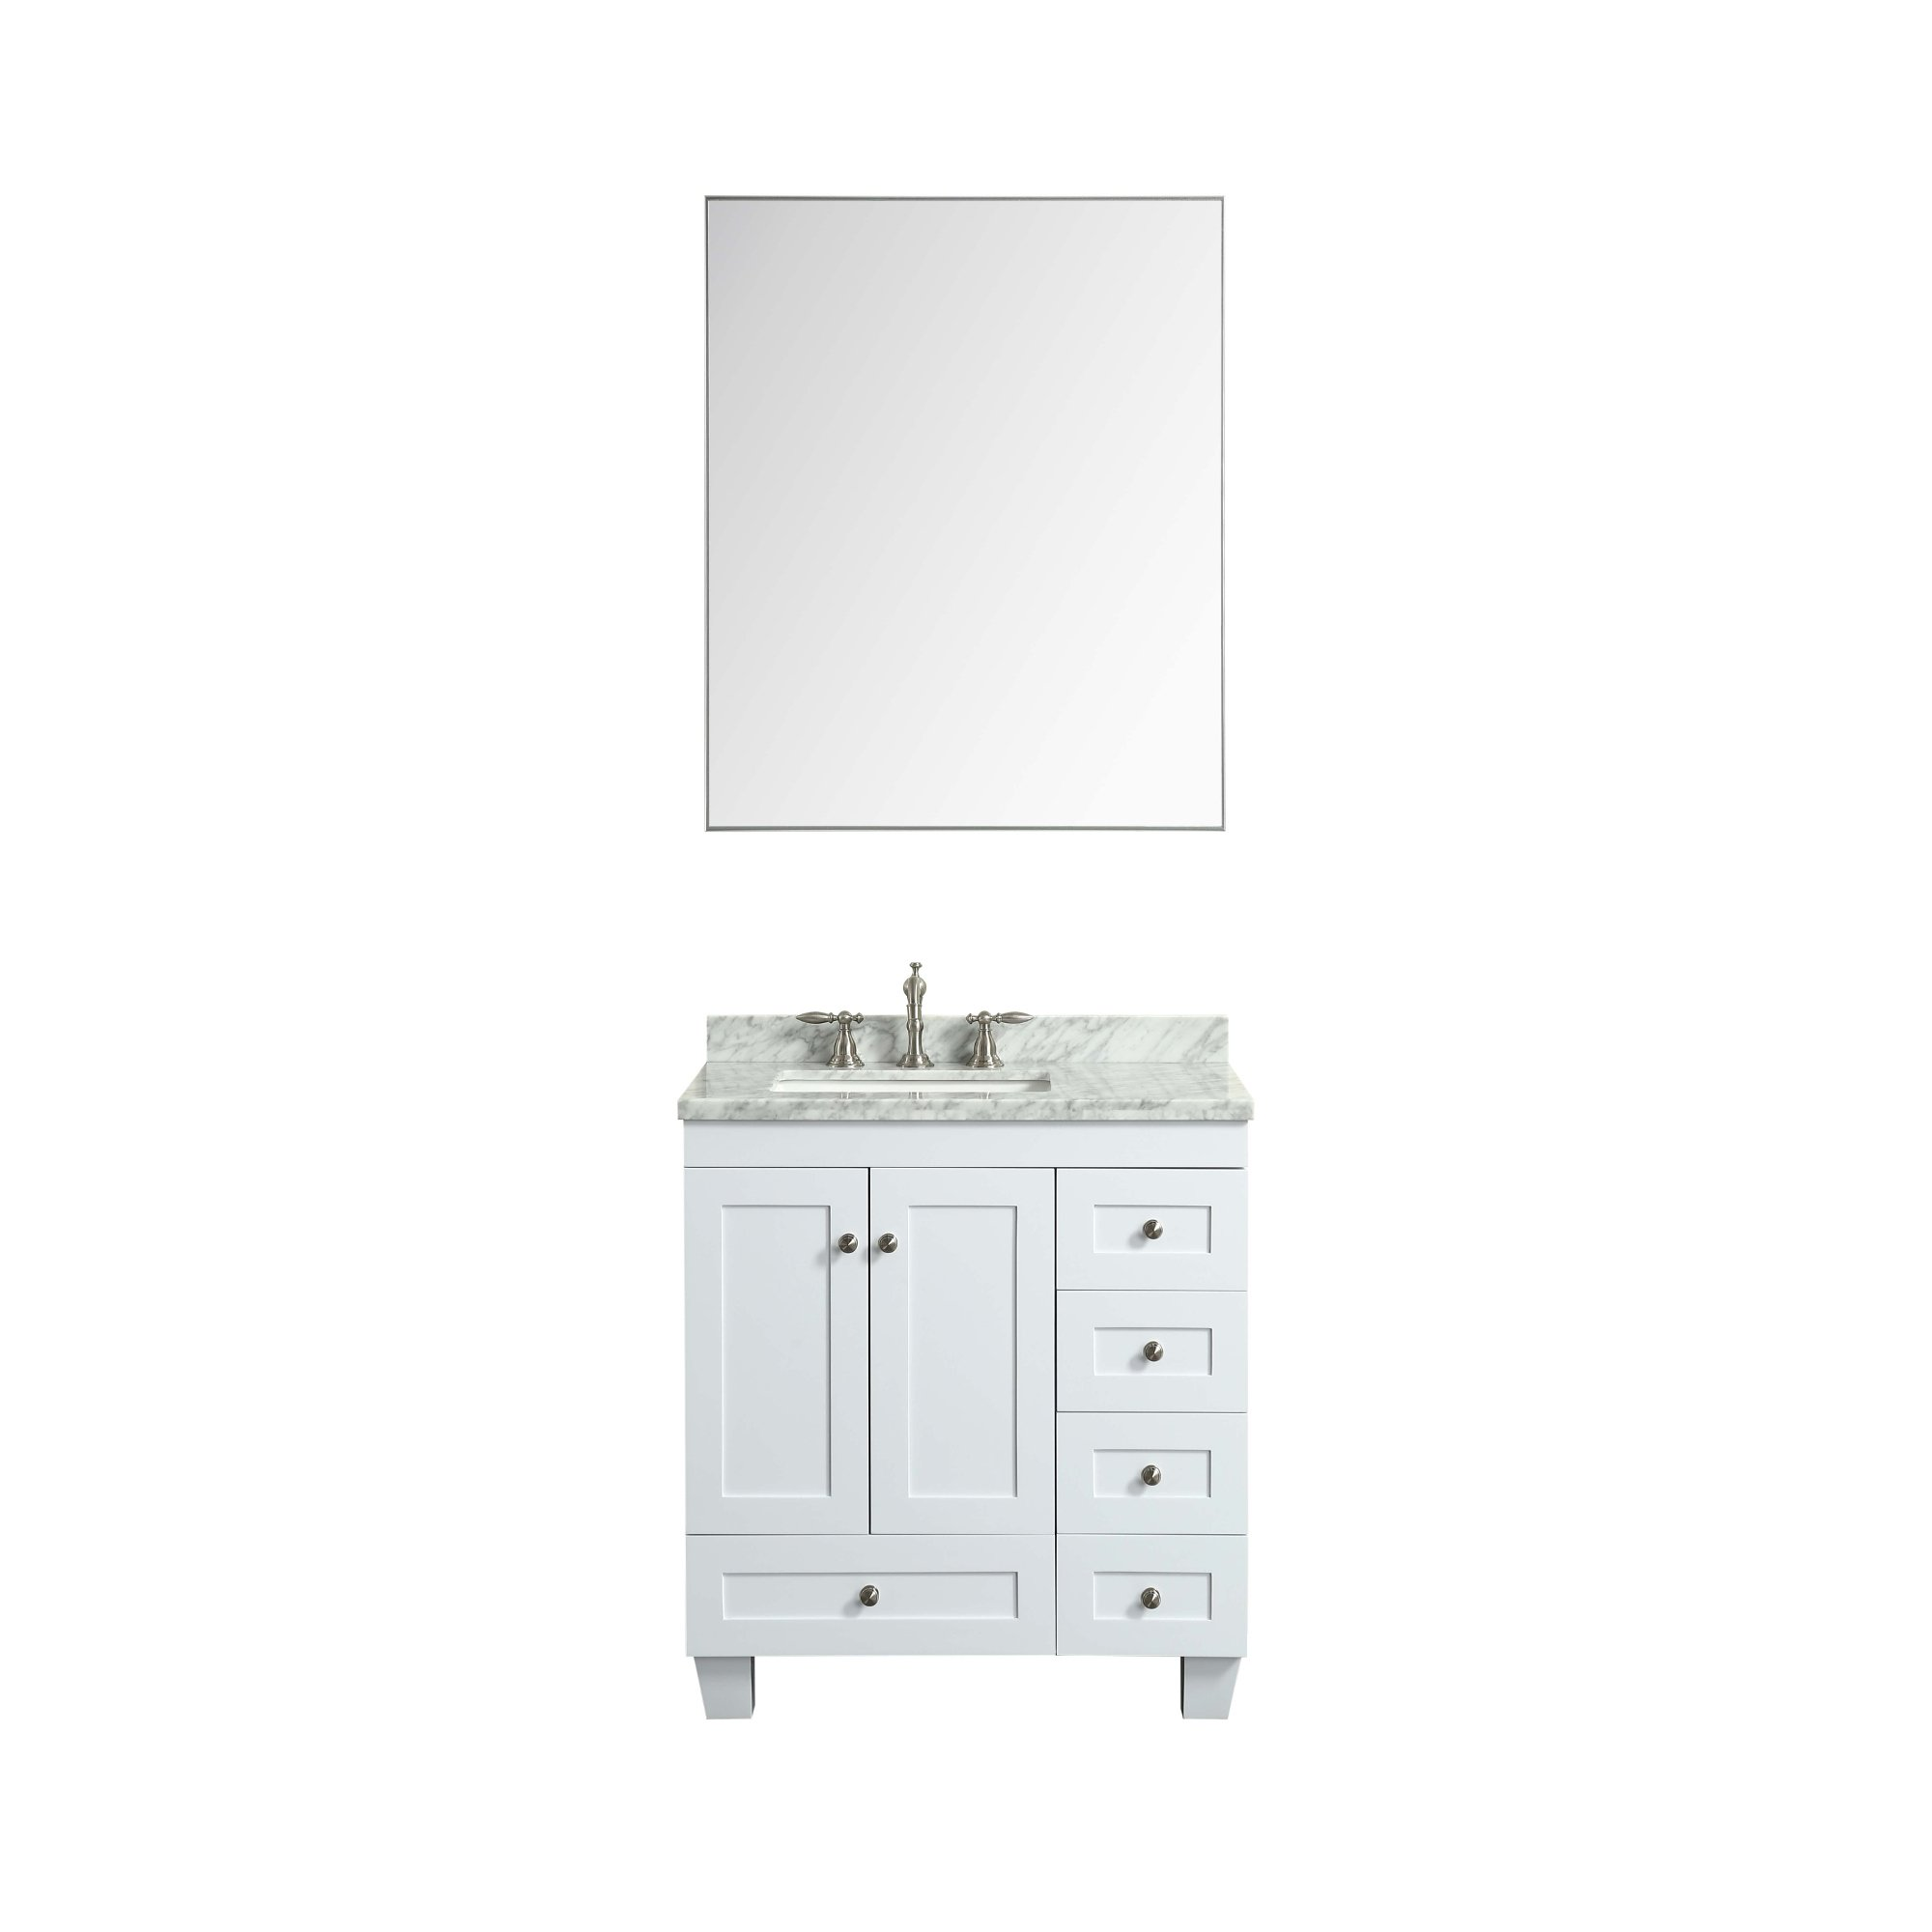 Eviva Evmr-36x30-Metalframe Sax 36'' Chrome Metal Frame Bathroom Wall Mirror Combination by Eviva